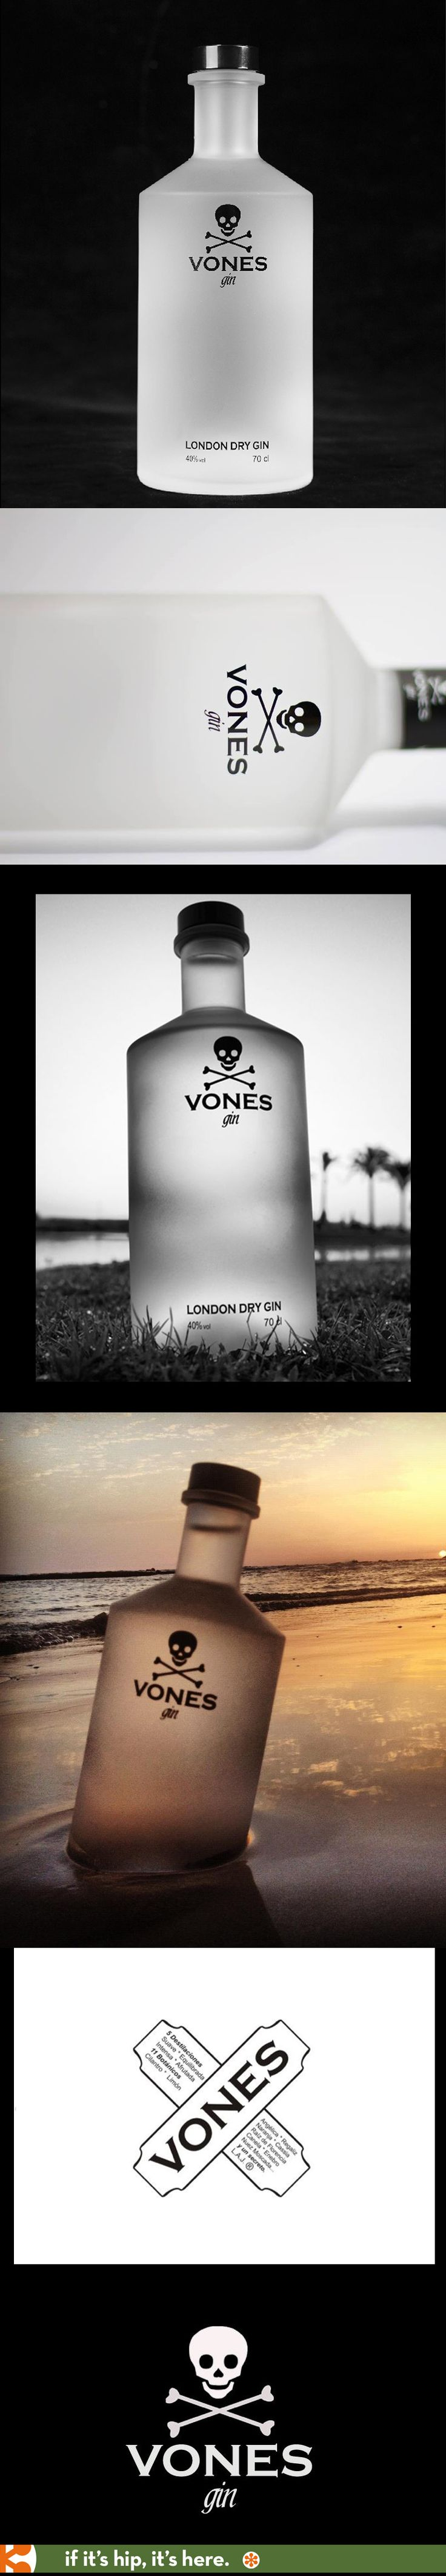 Vones Gin. Simple and an overused graphic, but I still like it :)